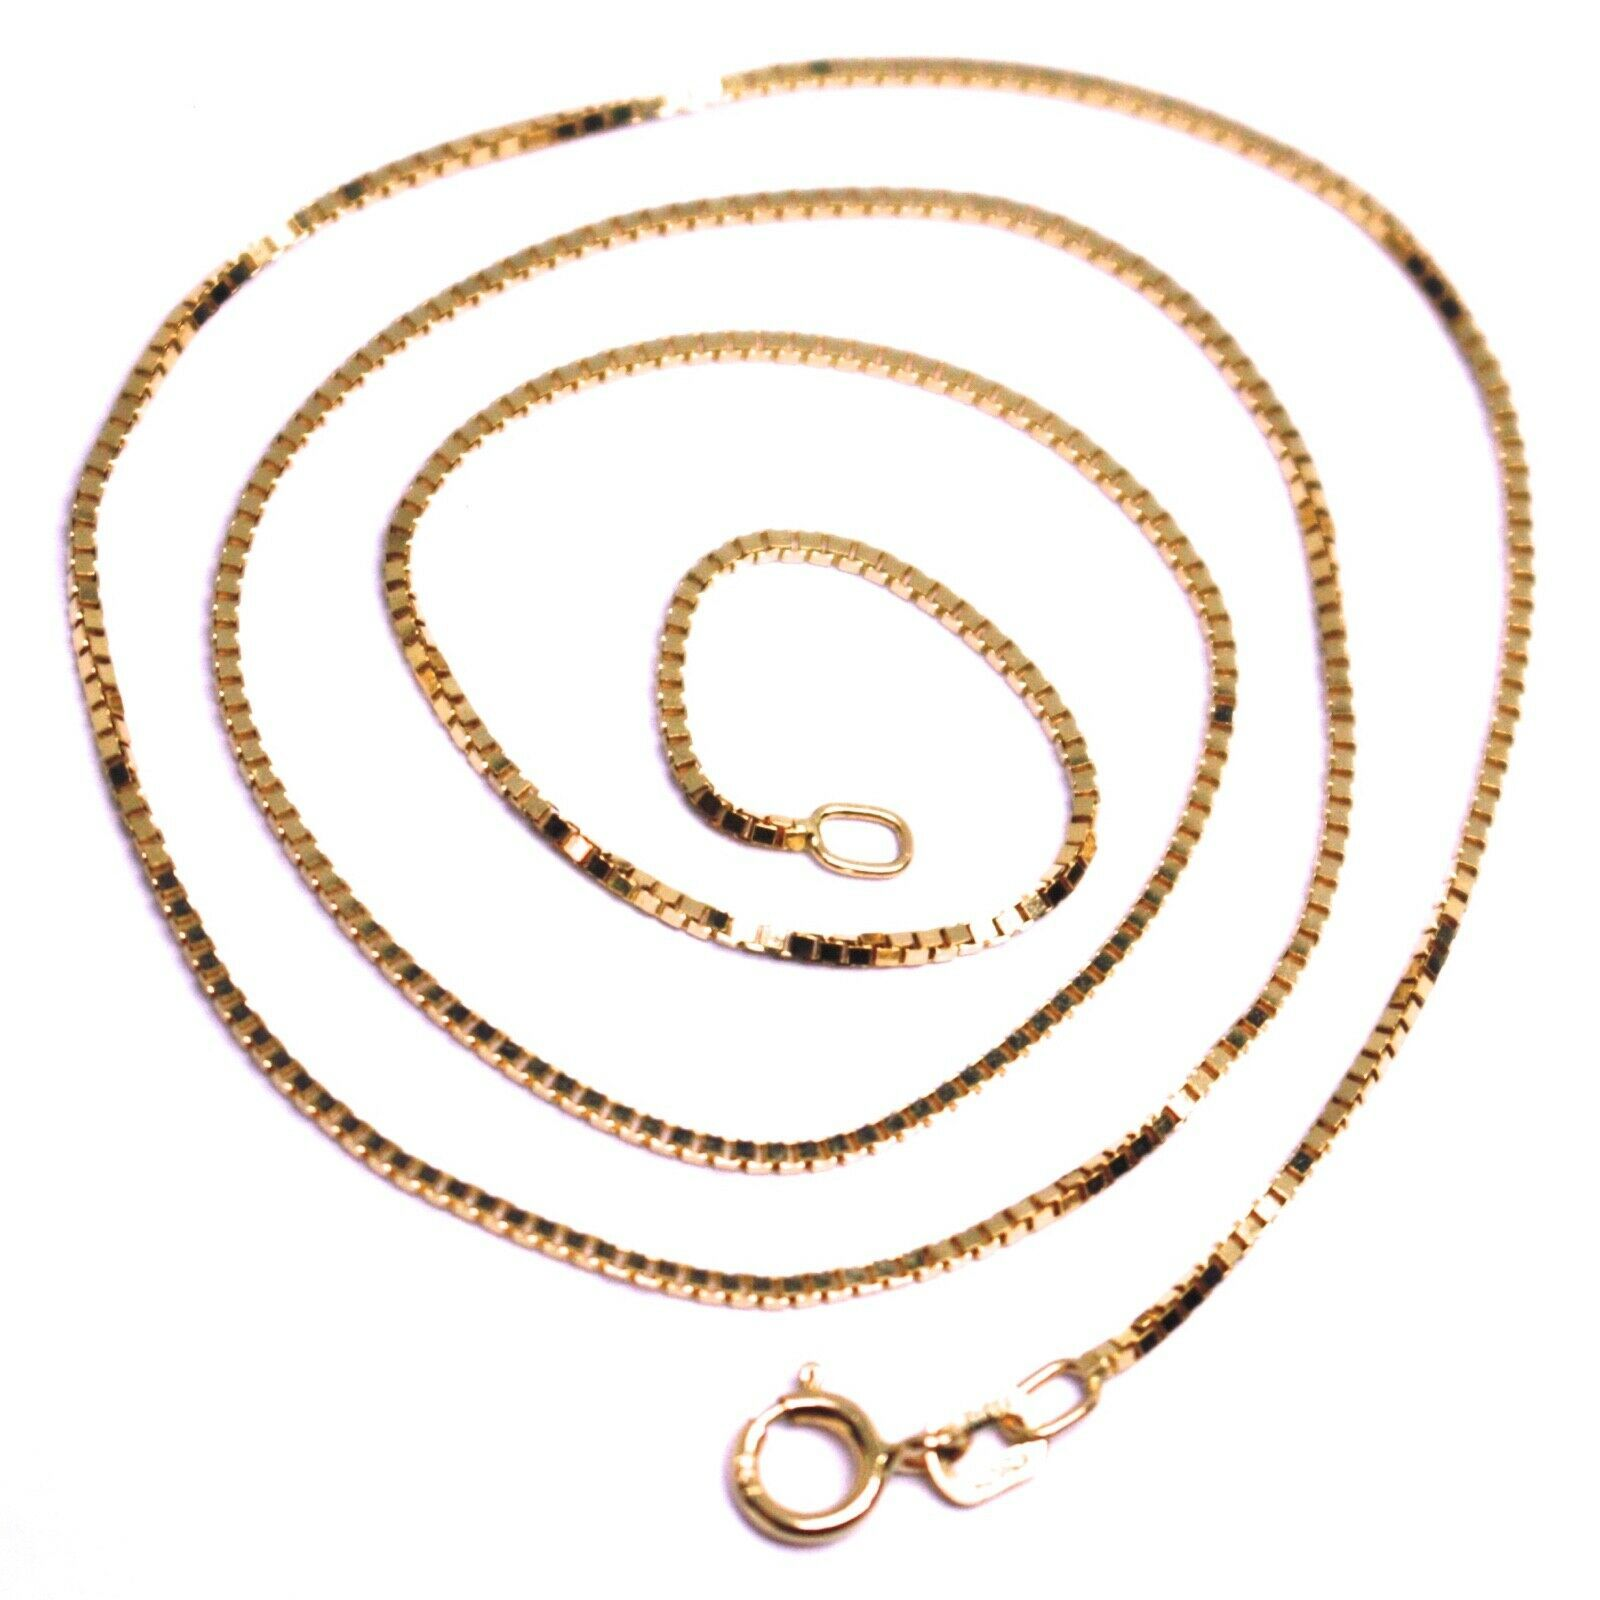 "SOLID 18K ROSE GOLD CHAIN 1.1 MM VENETIAN SQUARE BOX 19.7"", 50 cm, ITALY MADE"